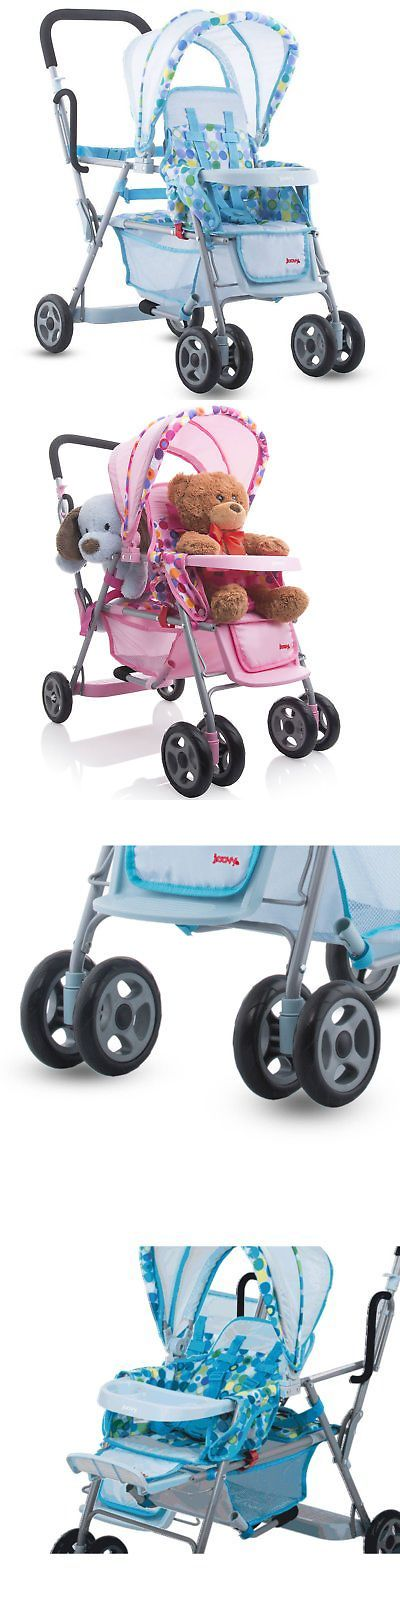 Other Preschool and Pretend Play 19181: Joovy Toy 3 Doll Caboose Folding Pretend Play Children Tandem Stroller, Blue Dot -> BUY IT NOW ONLY: $74.99 on eBay!